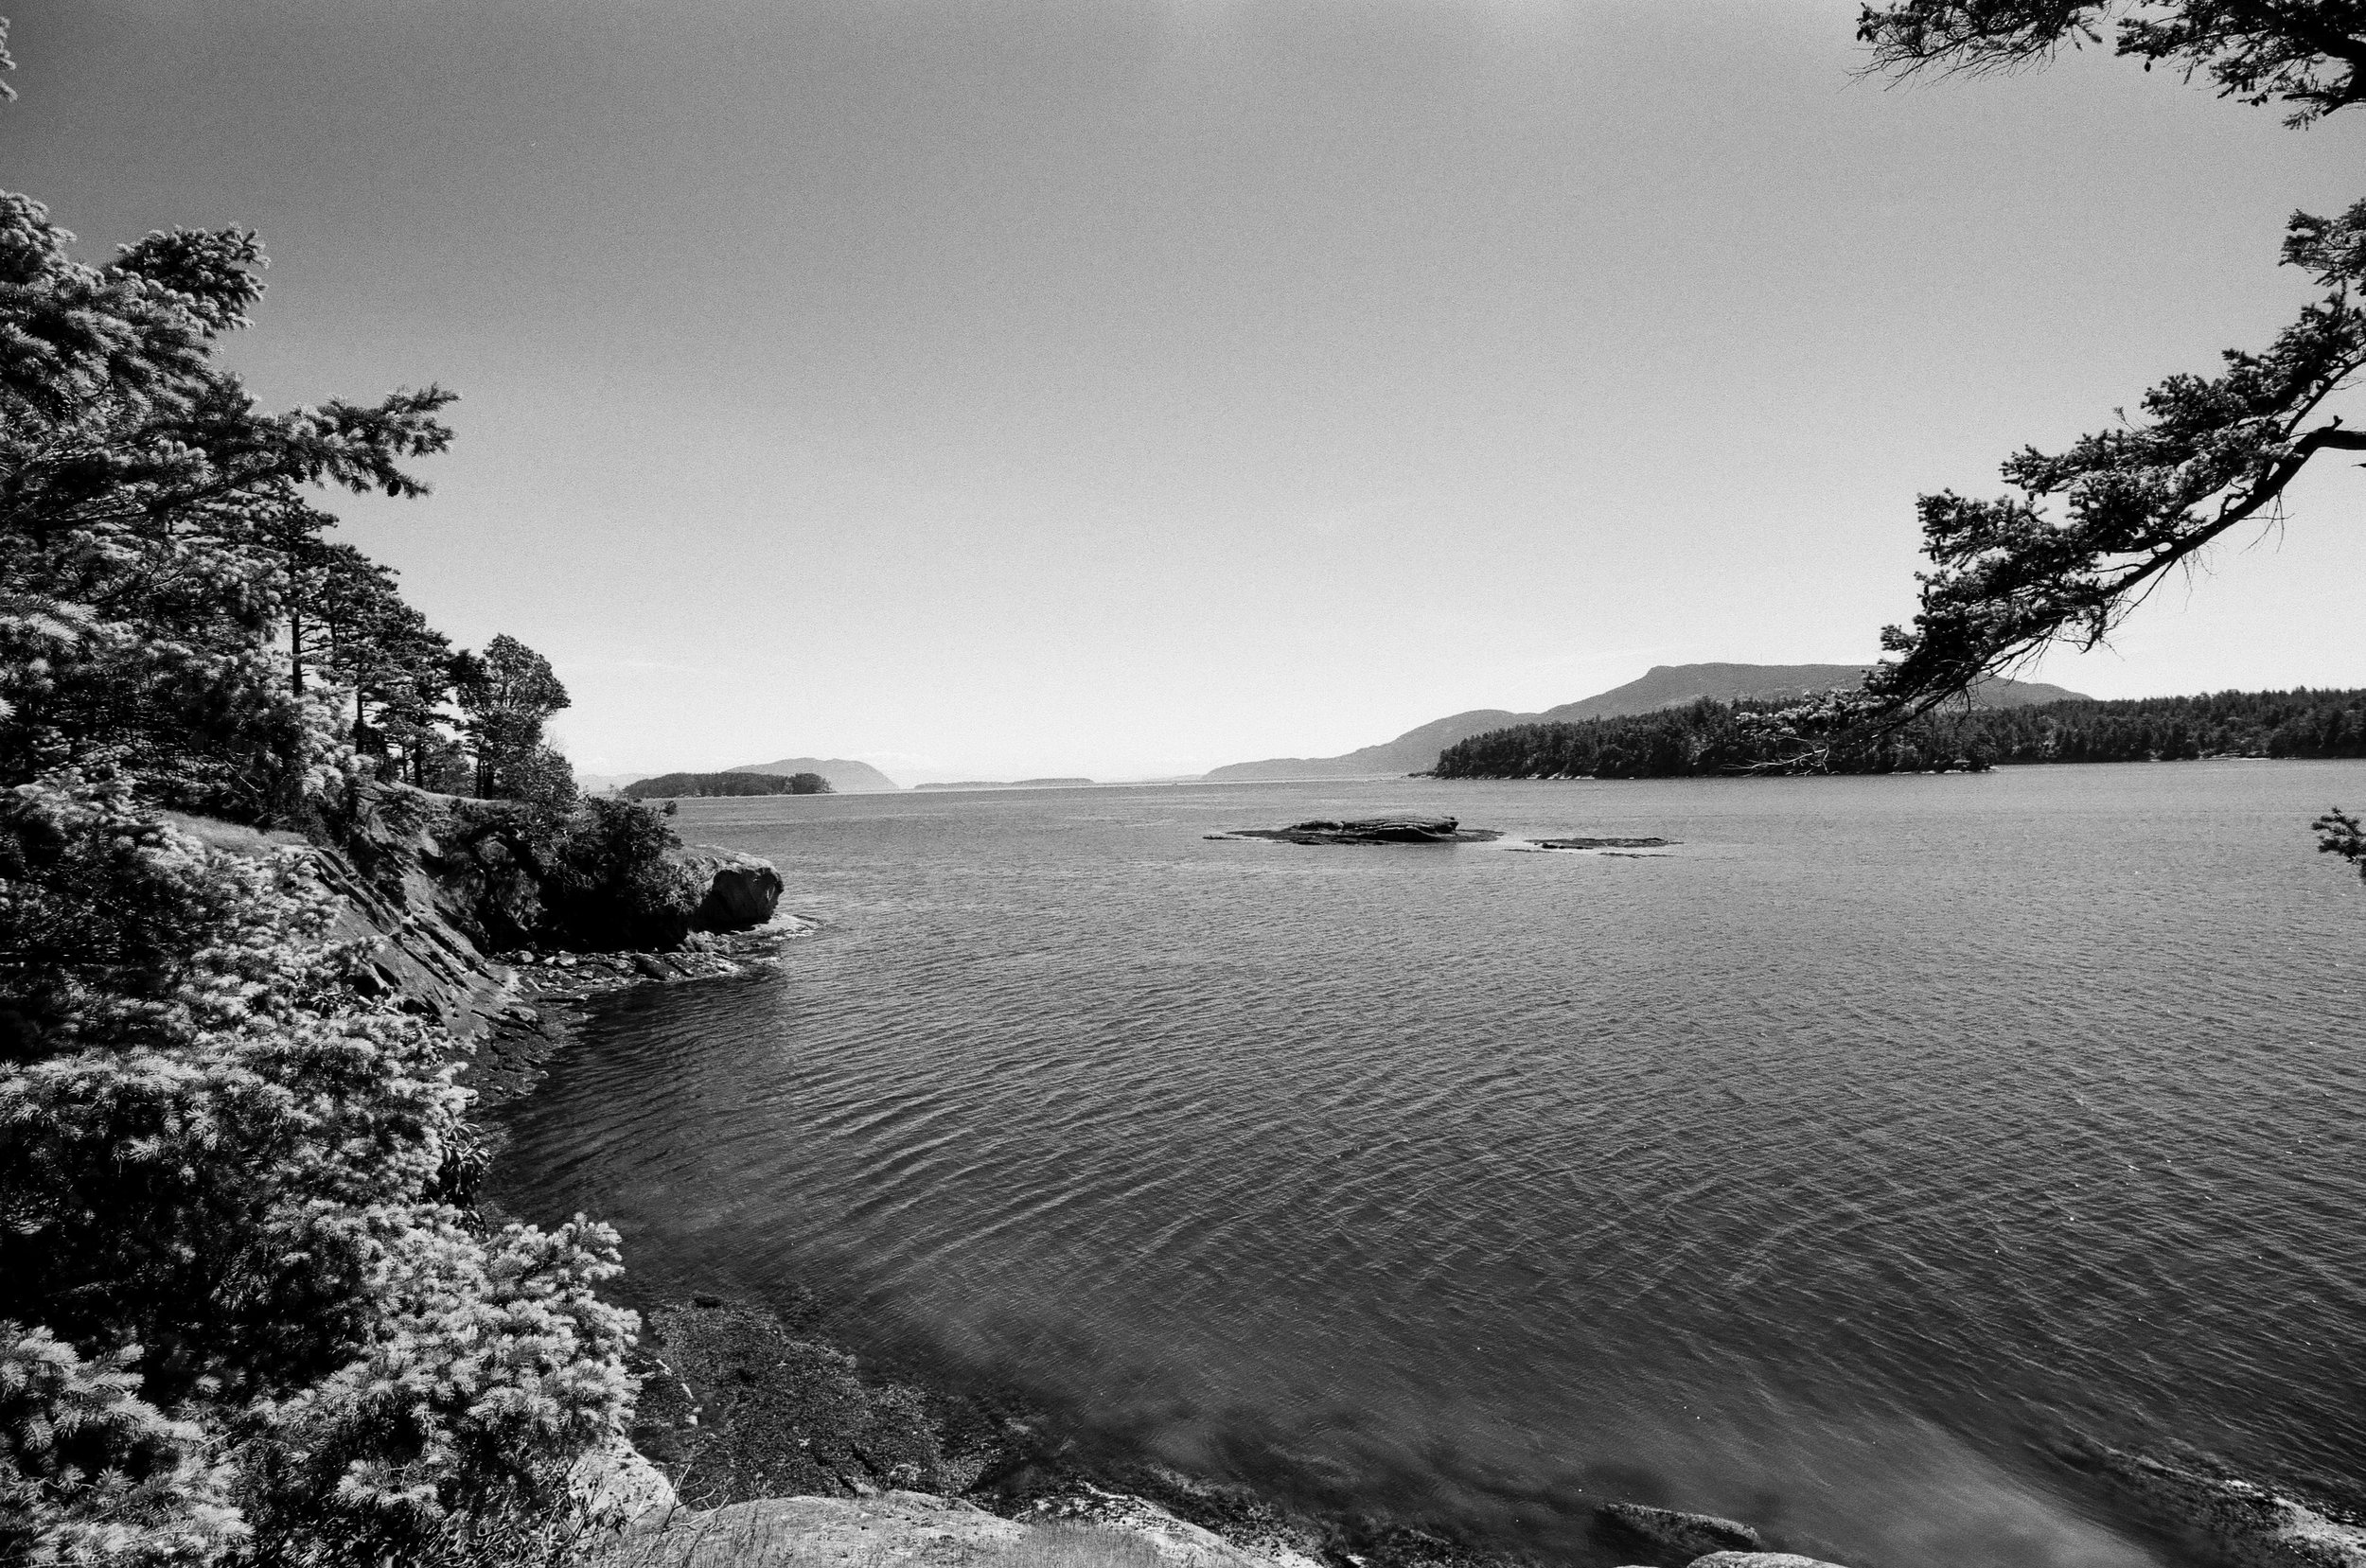 Echo Bay, Sucia Island, Washington. Fuji Acros 100